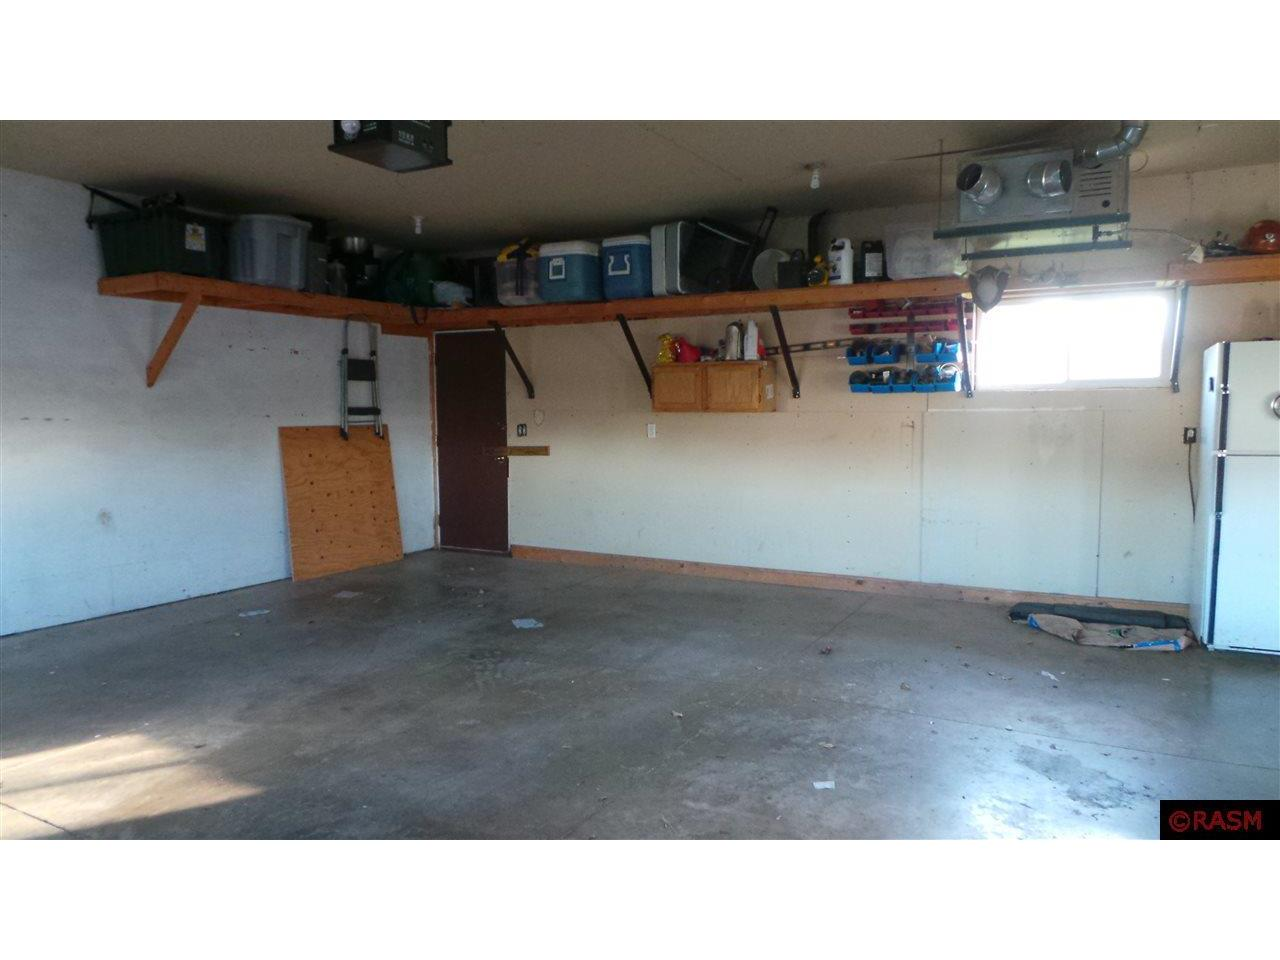 insulated and heated garage with new insulated garage doors.